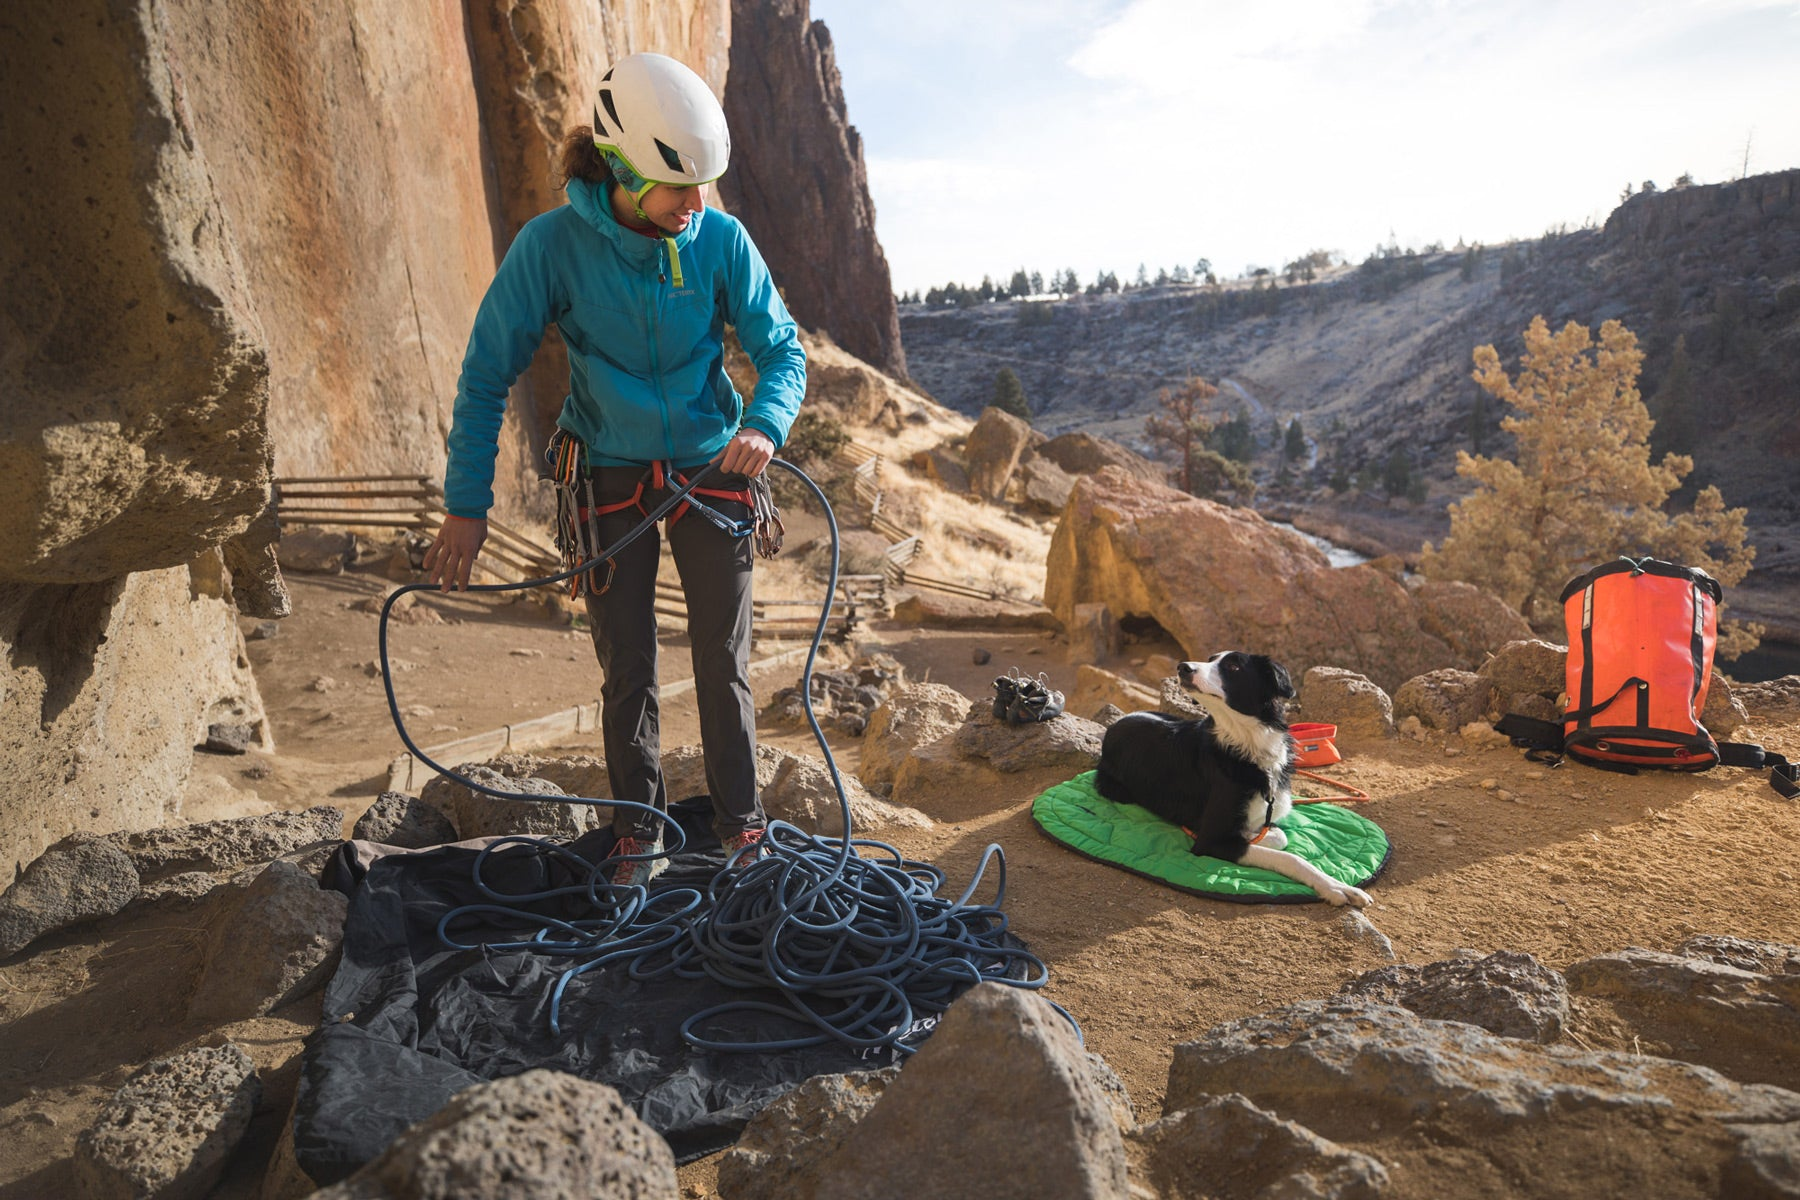 Woman flakes out climbing rope while dog lays on highland dog sleeping bag.